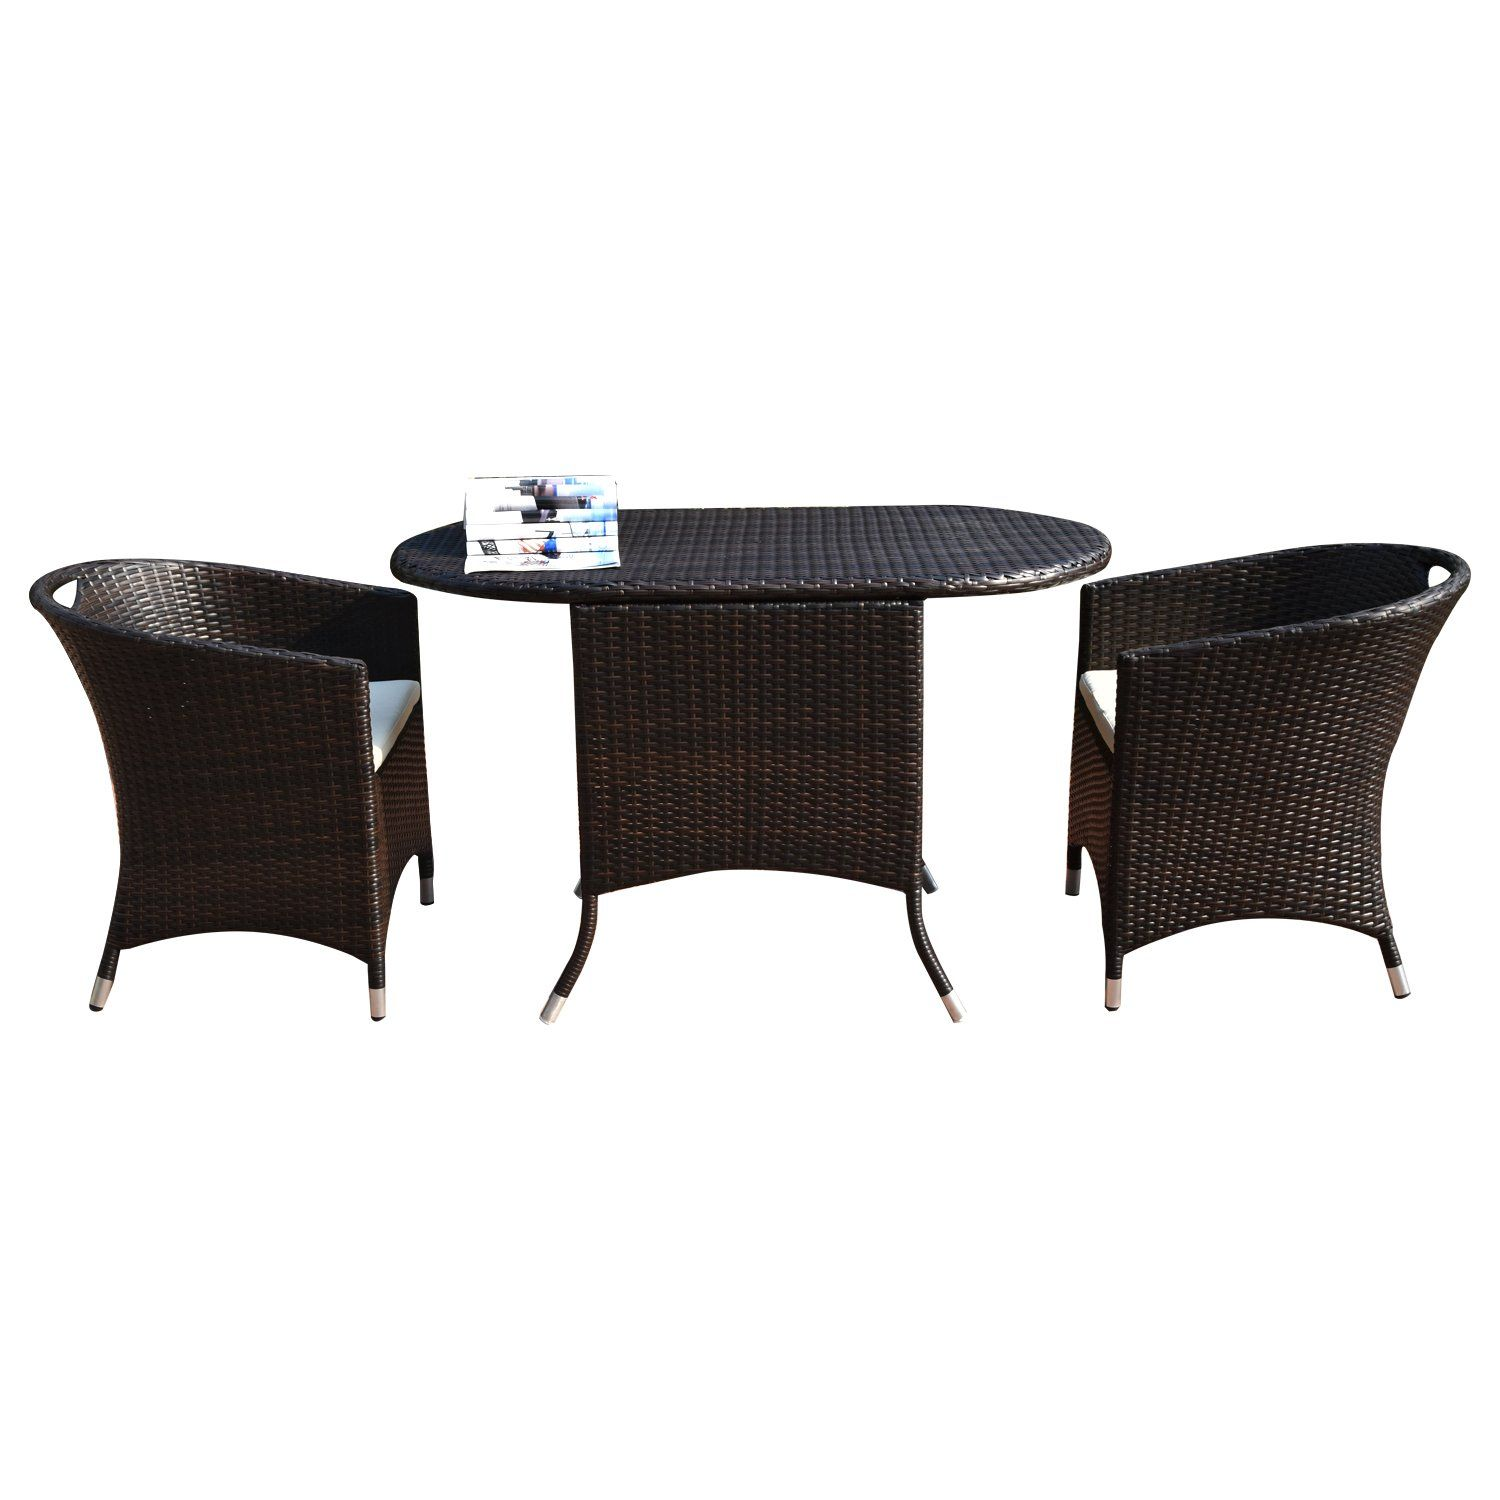 Adeco patio furniture set brown wicker piece dinning set with